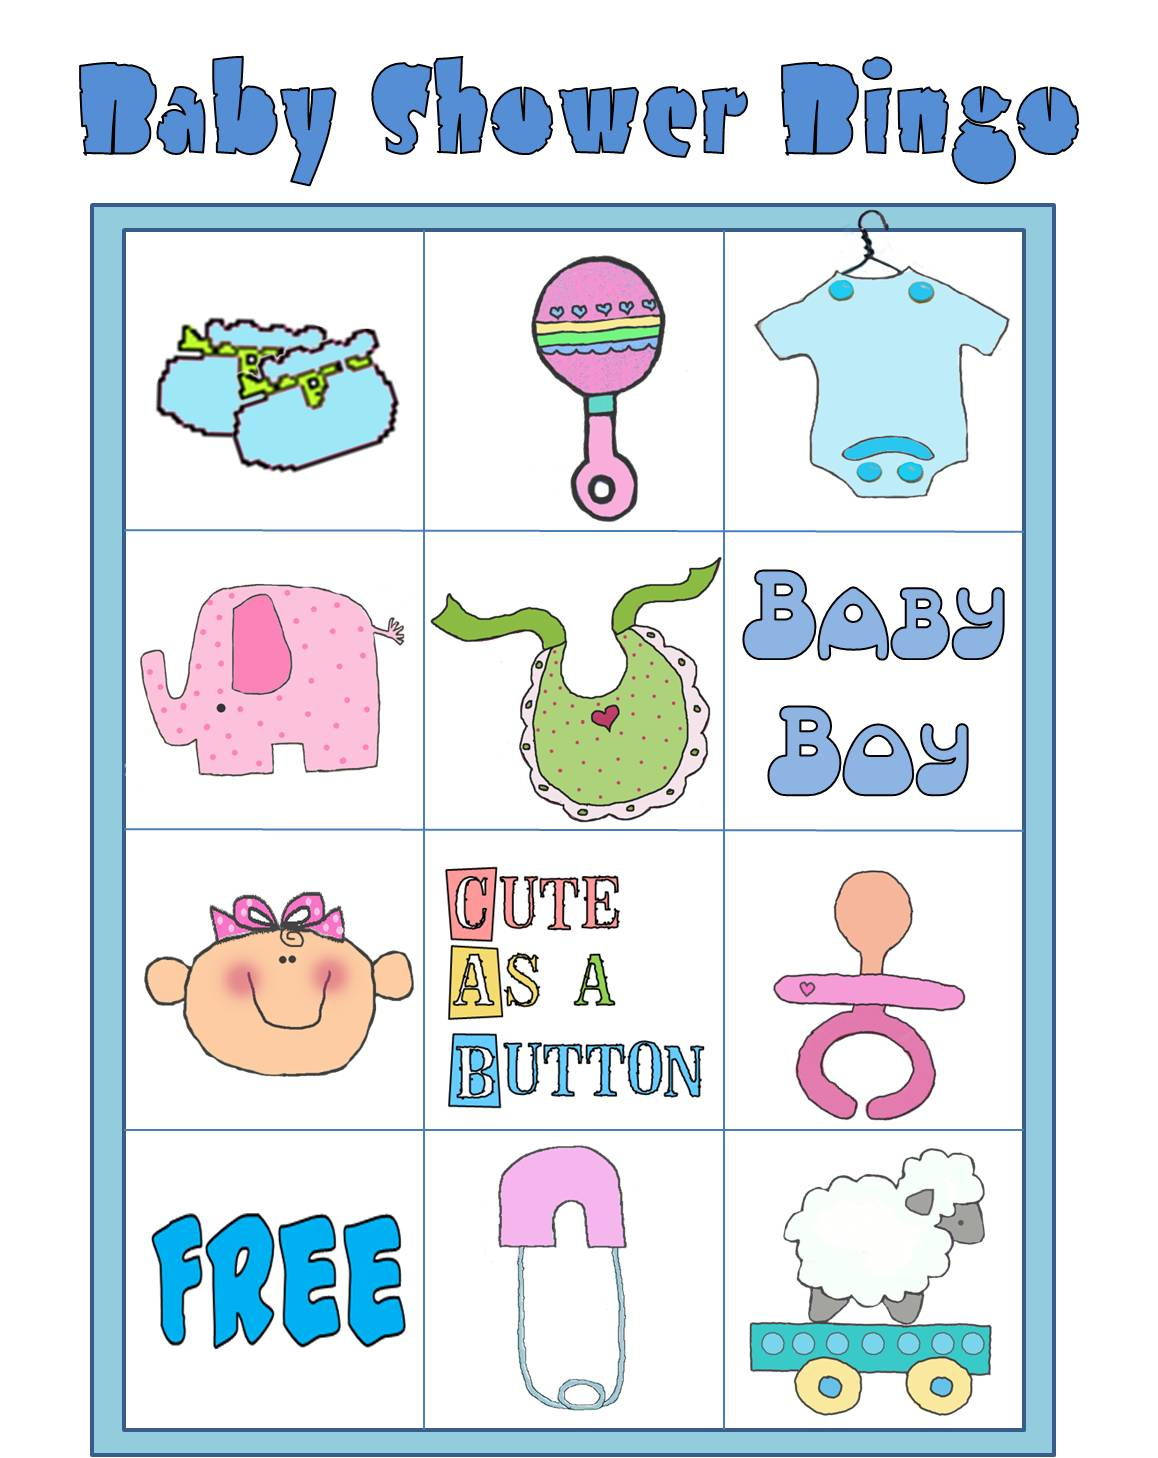 It's just a photo of Playful Printable Bingo Chips